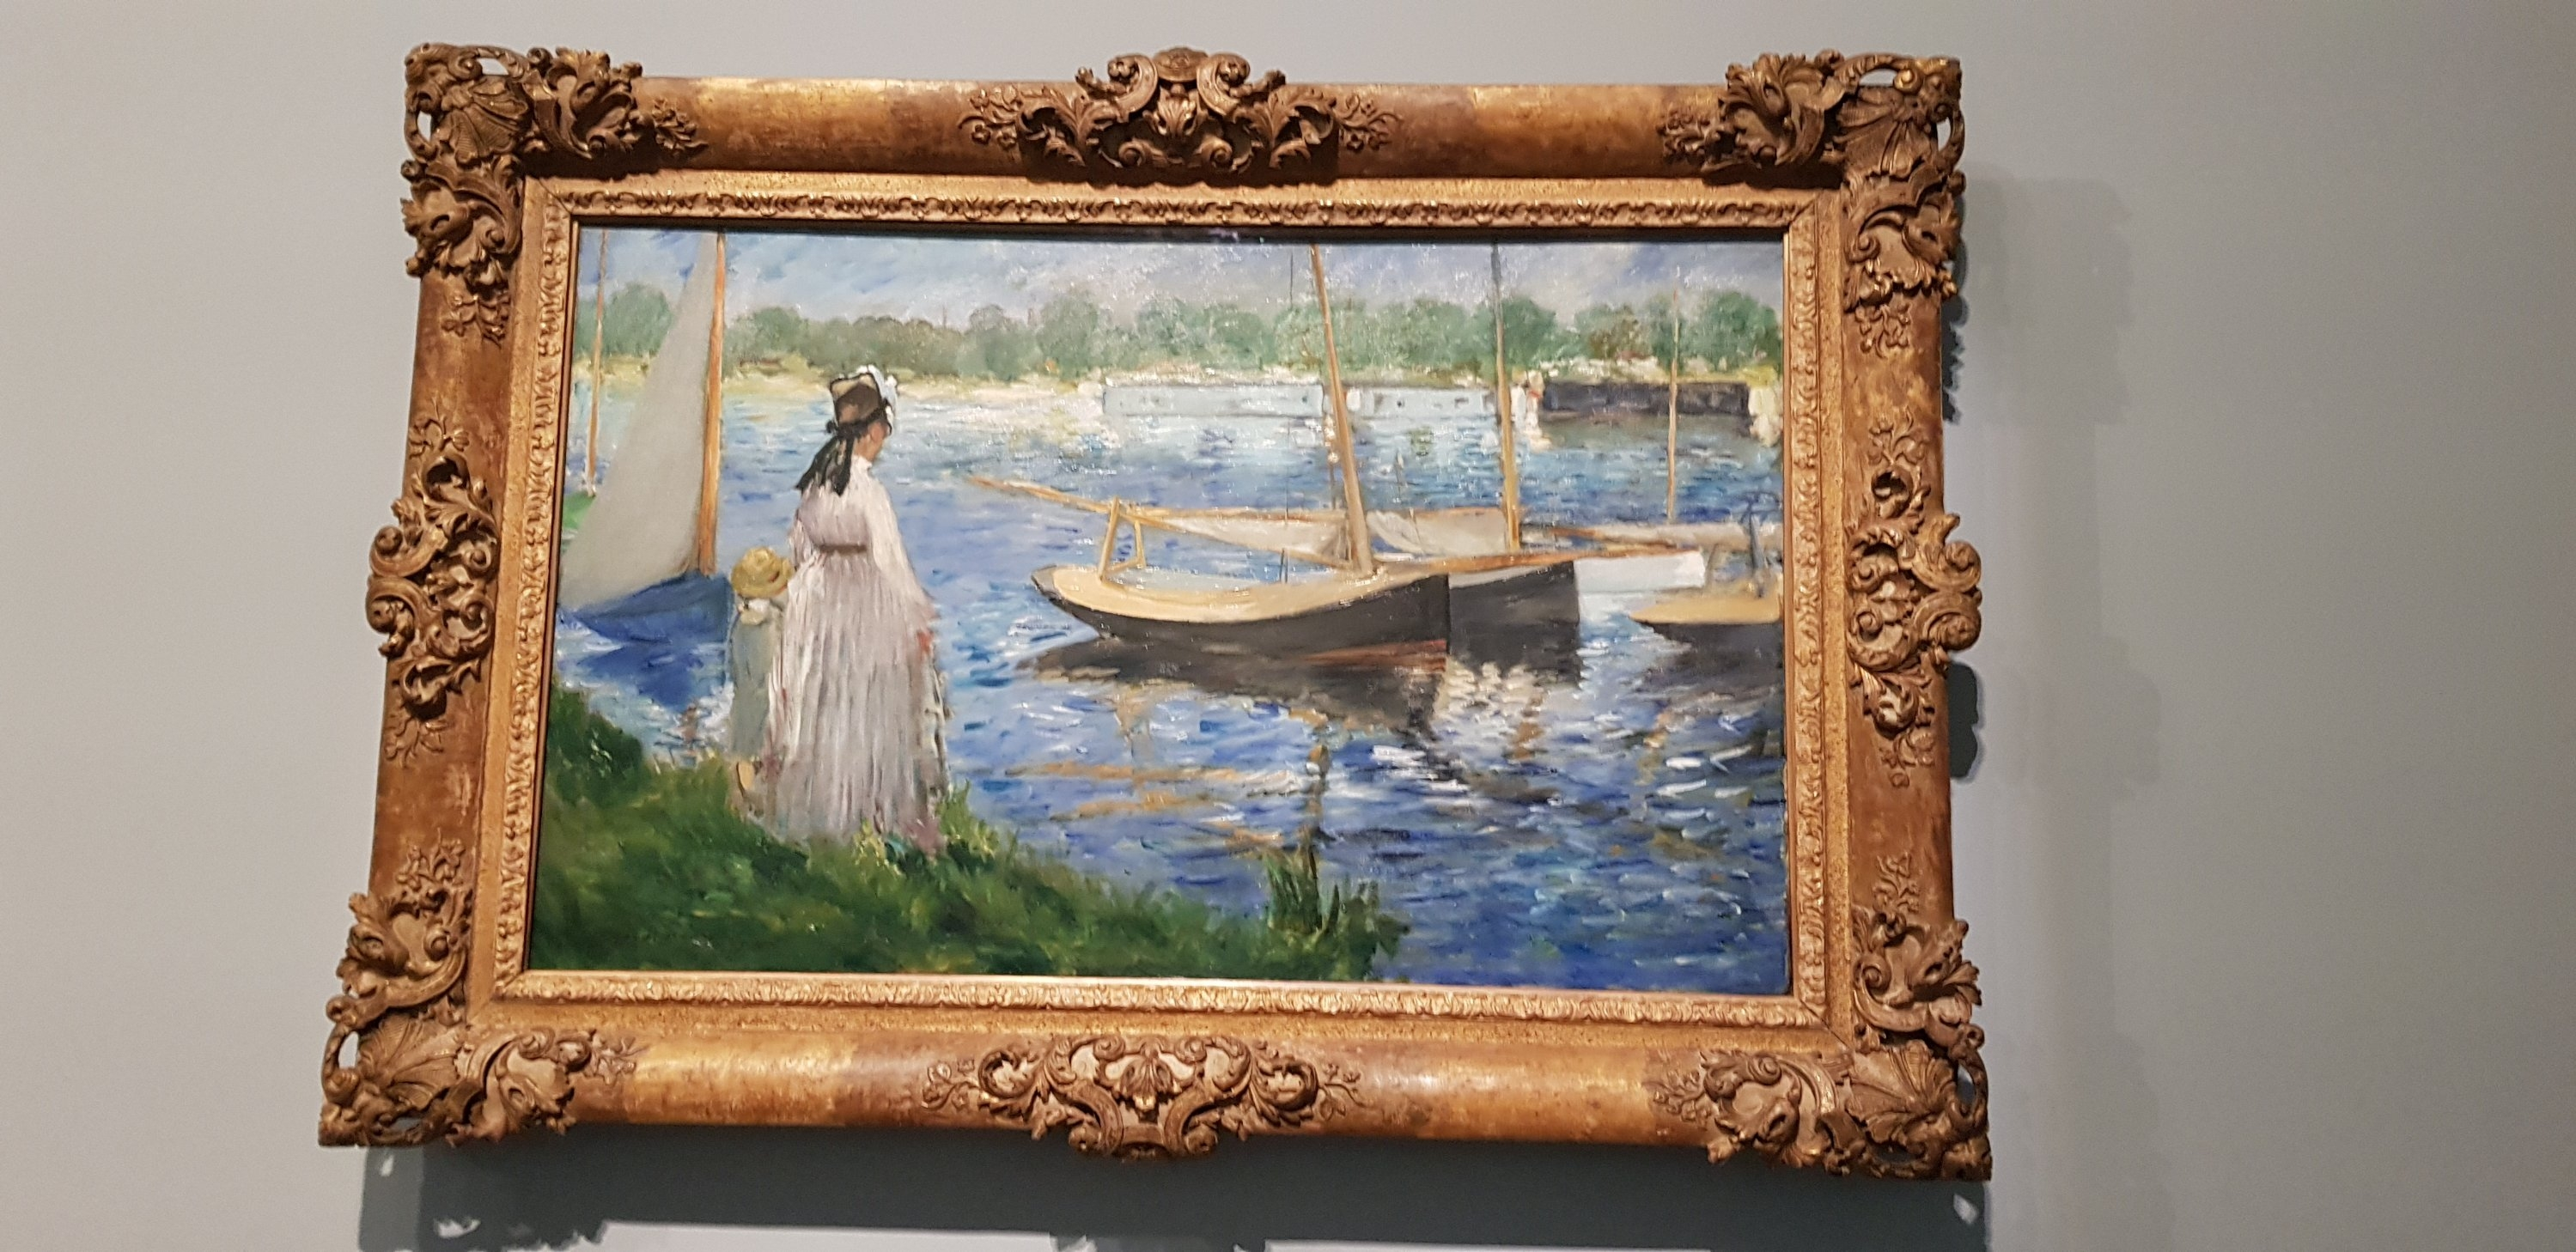 Impressionist painting from the exhibition at Fondation Louis Vuitton